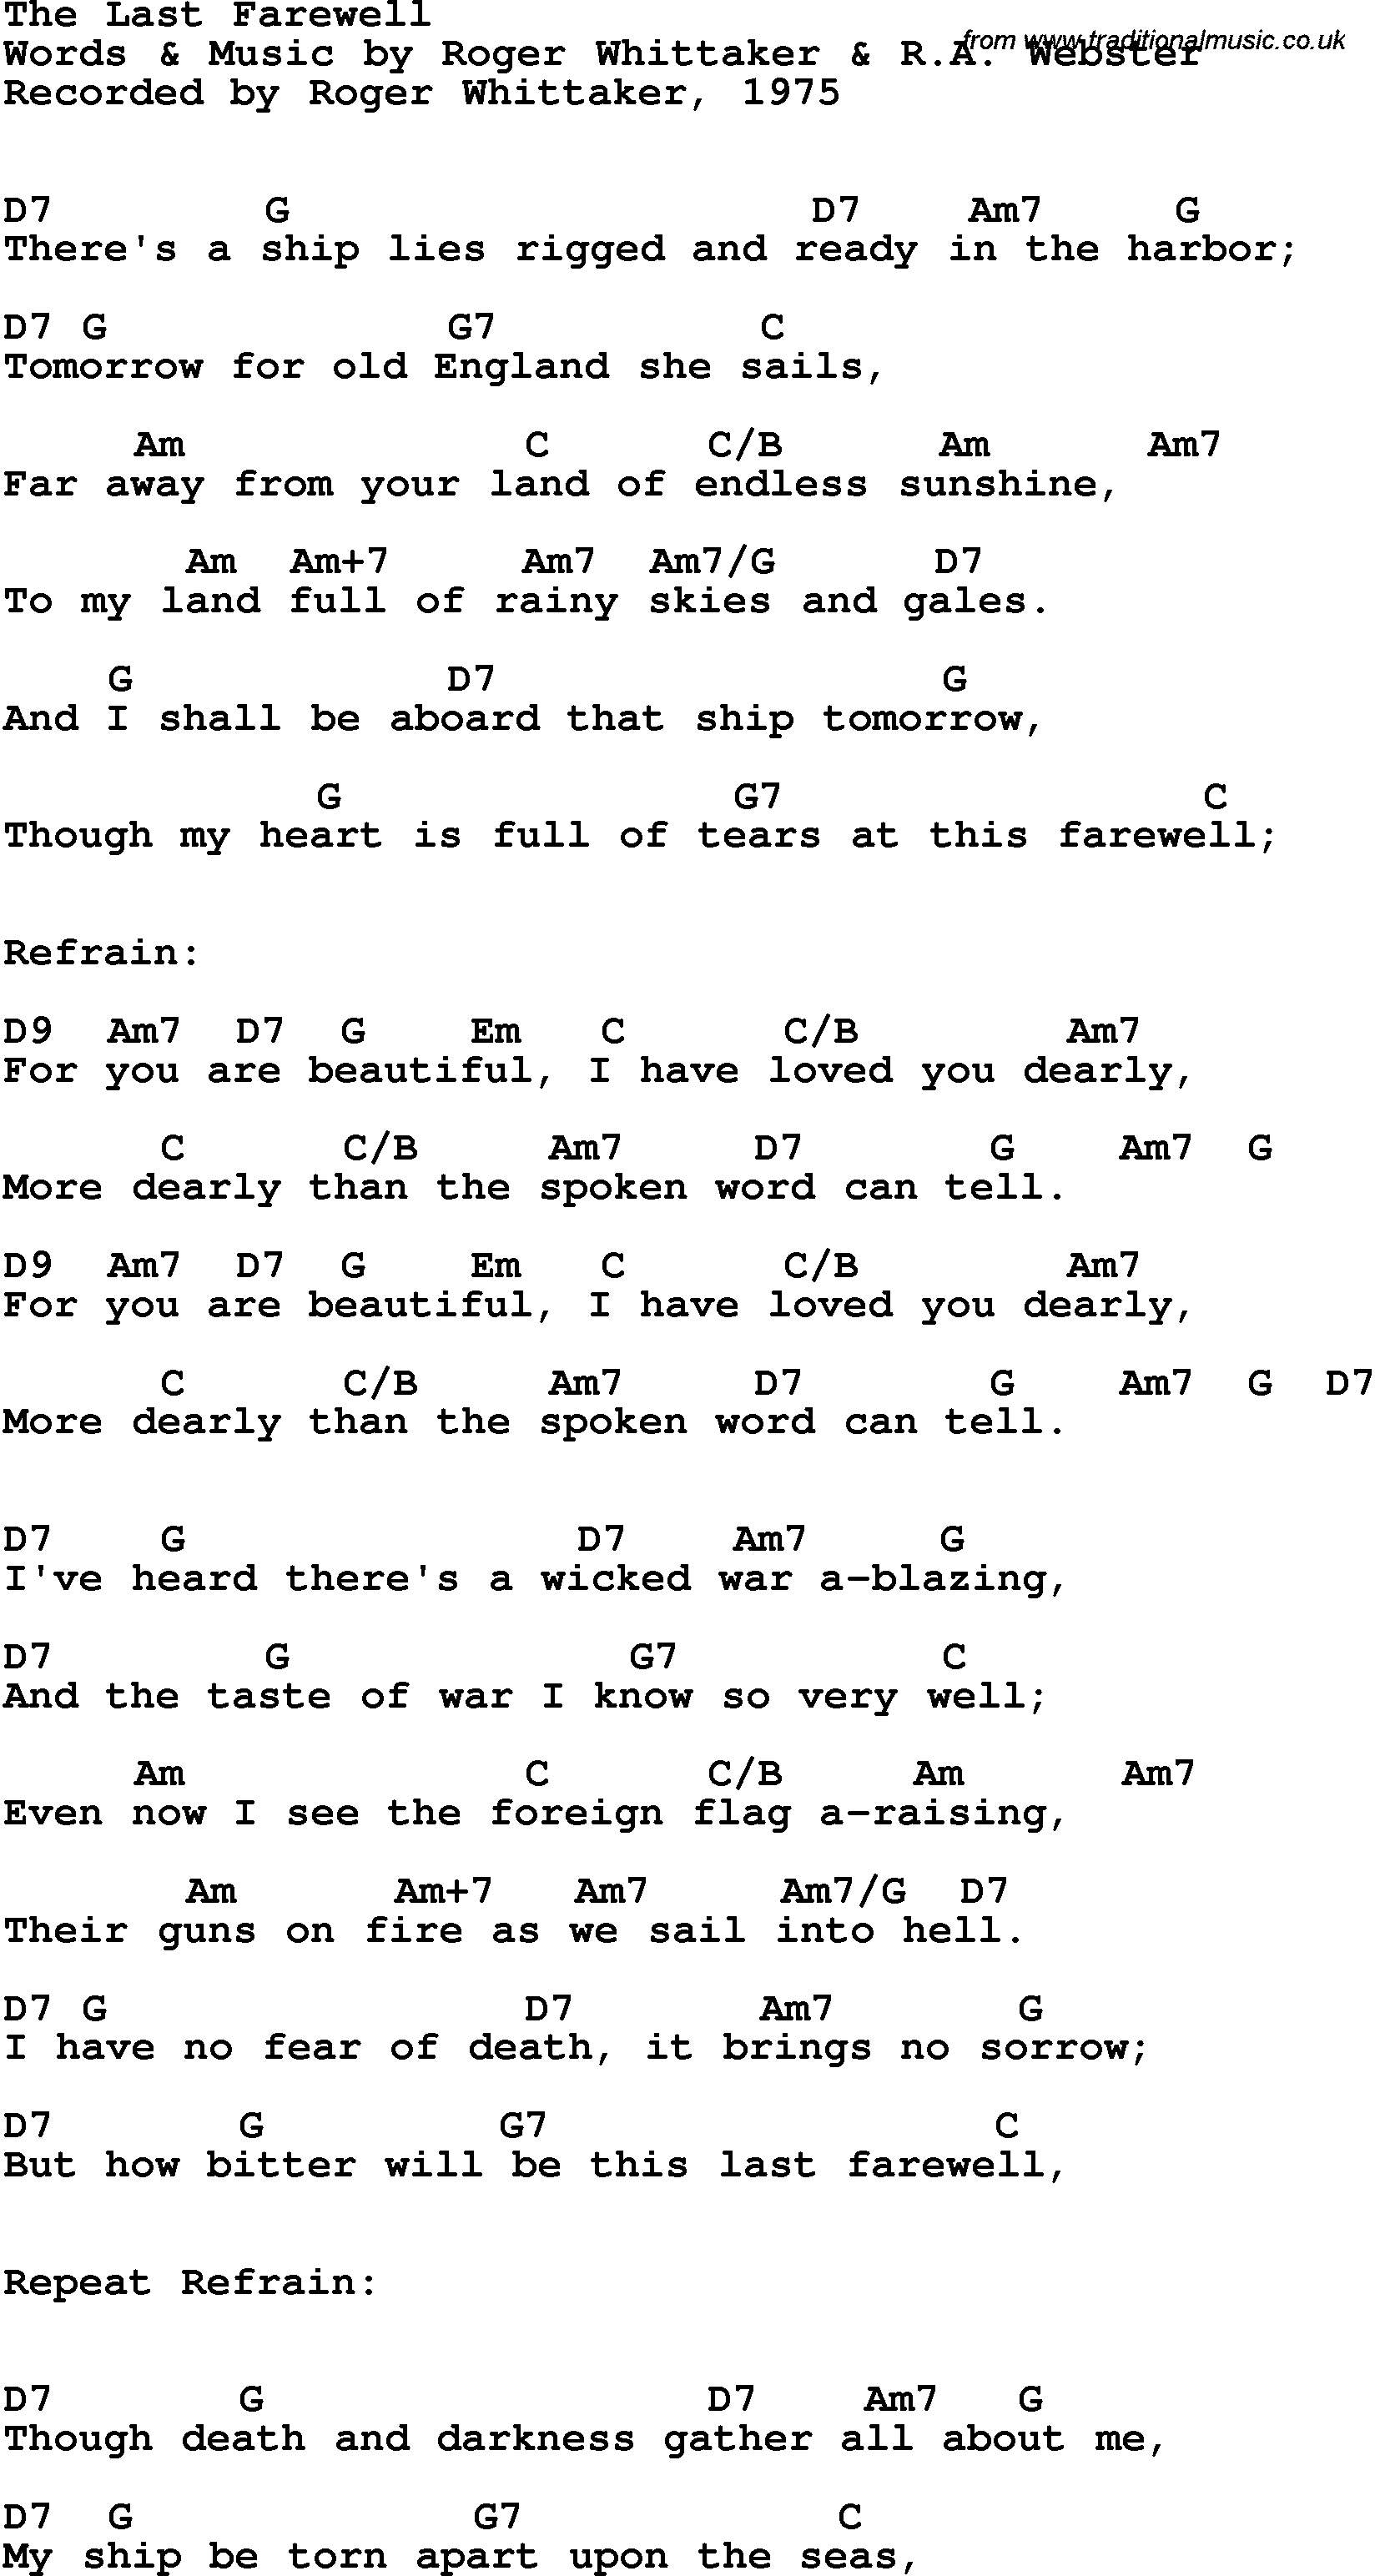 Song Lyrics With Guitar Chords For Last Farewell The Roger